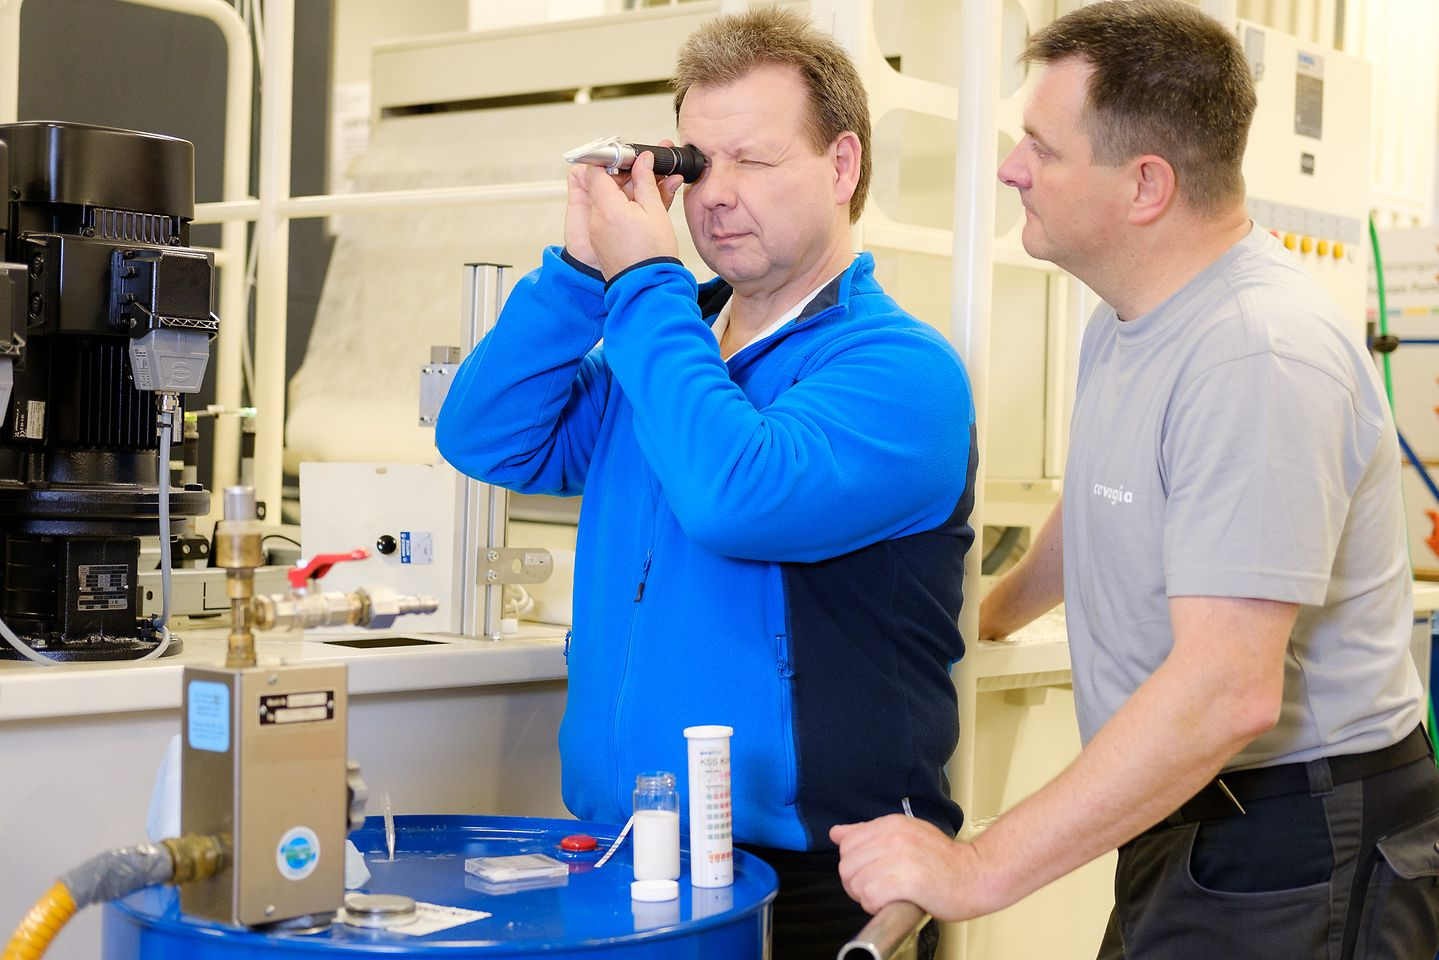 Quality control with a refractometer to measure relative density